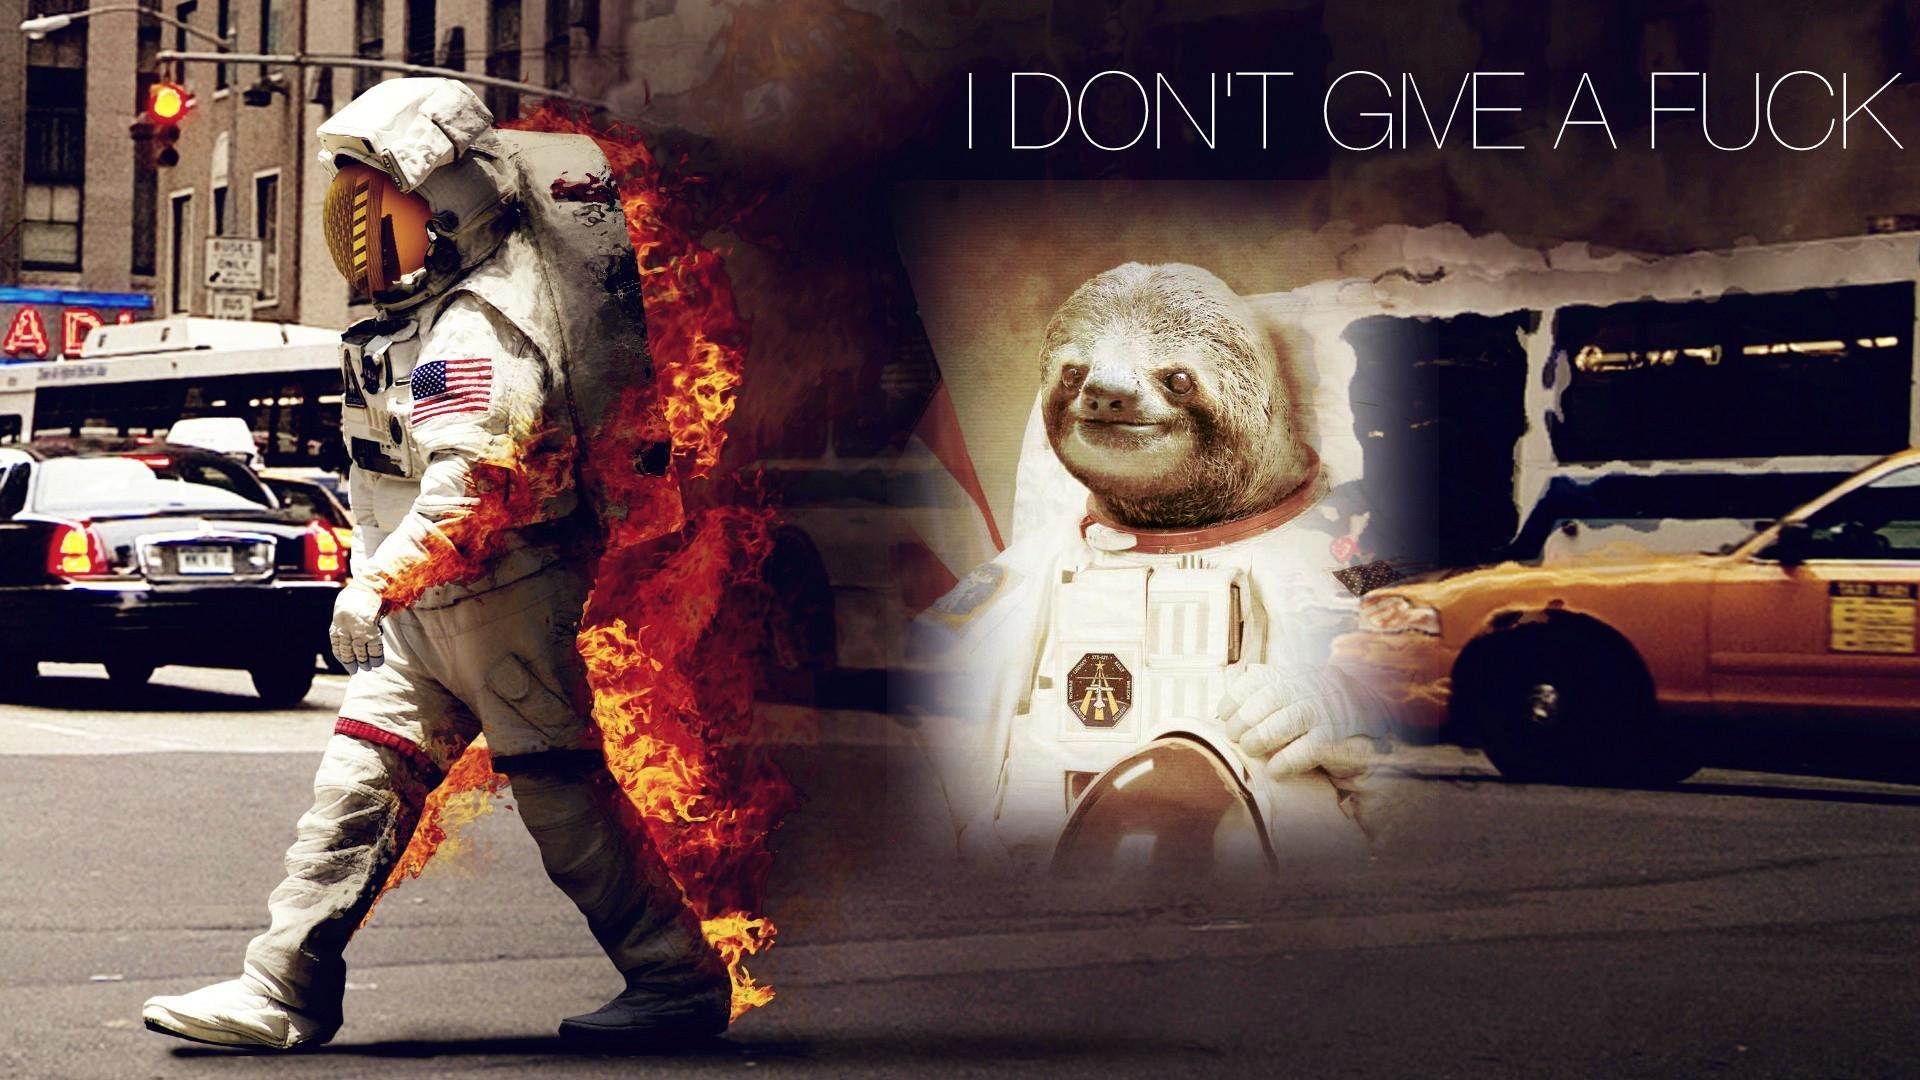 Funny Sloth Wallpapers (73+ images)